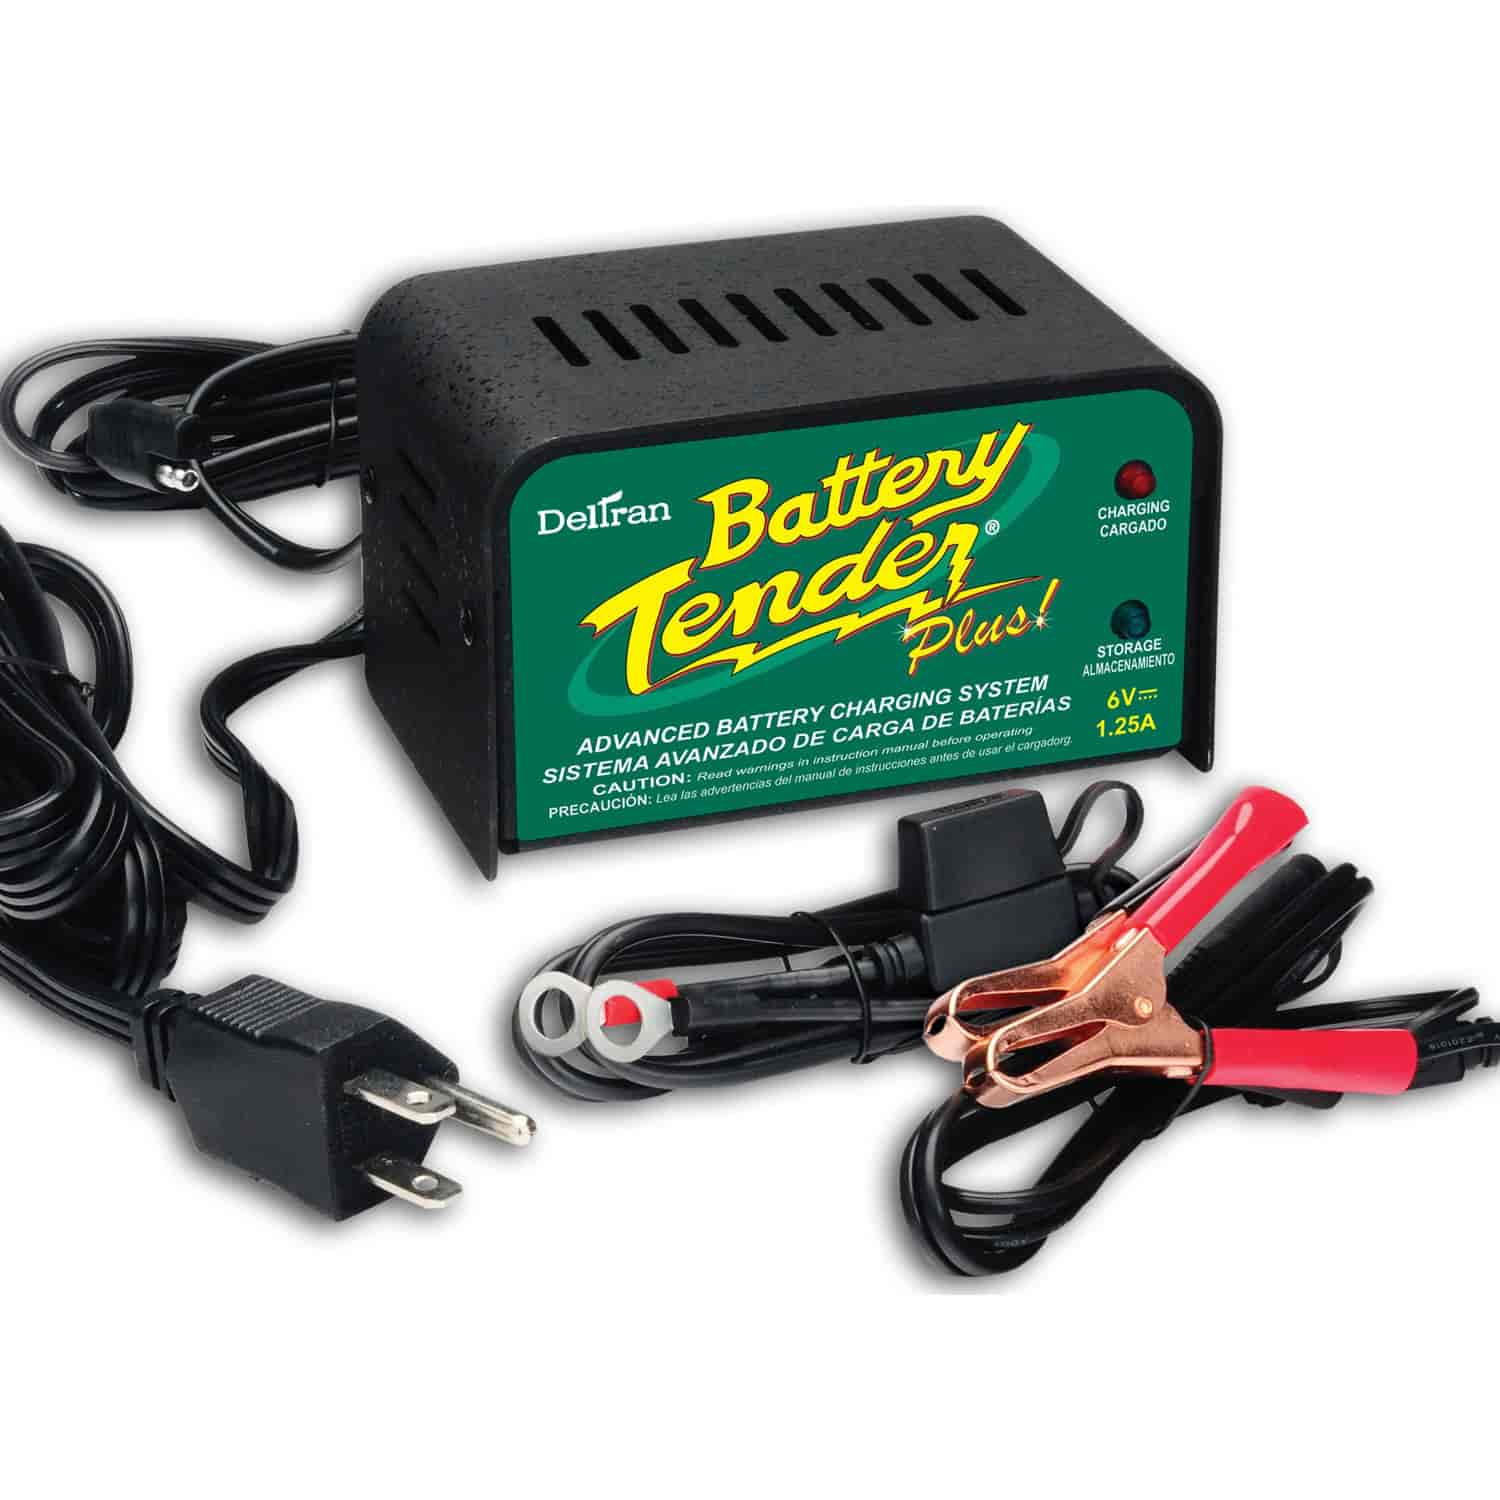 Battery Tender 021-0144 - Battery Tender Battery Chargers